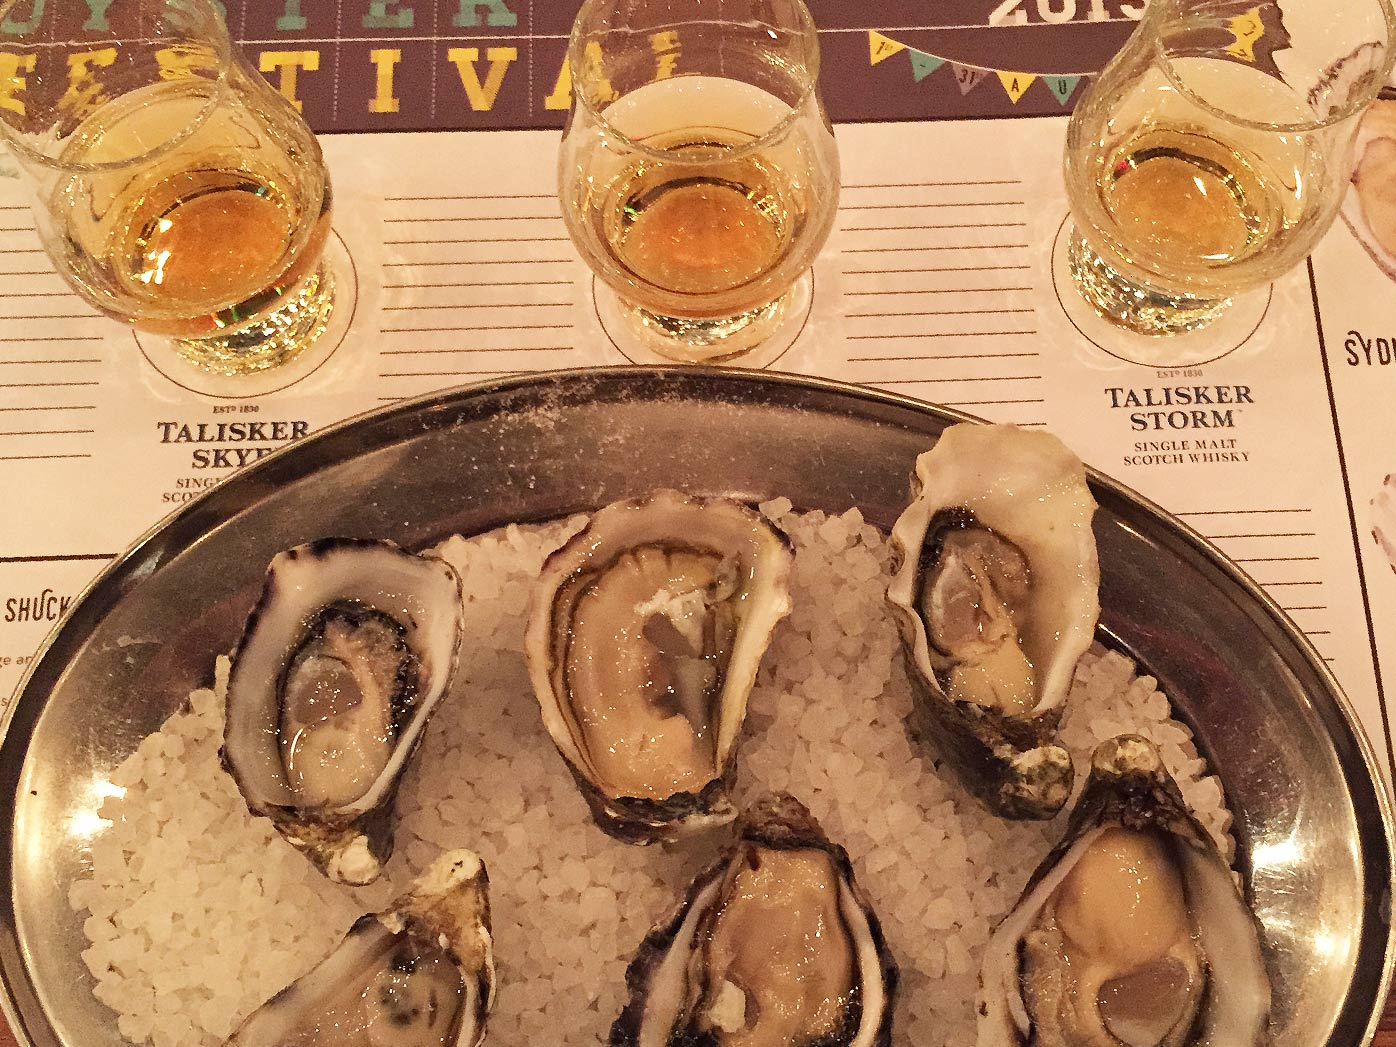 Oysters and whisky, a match made in ... a bar